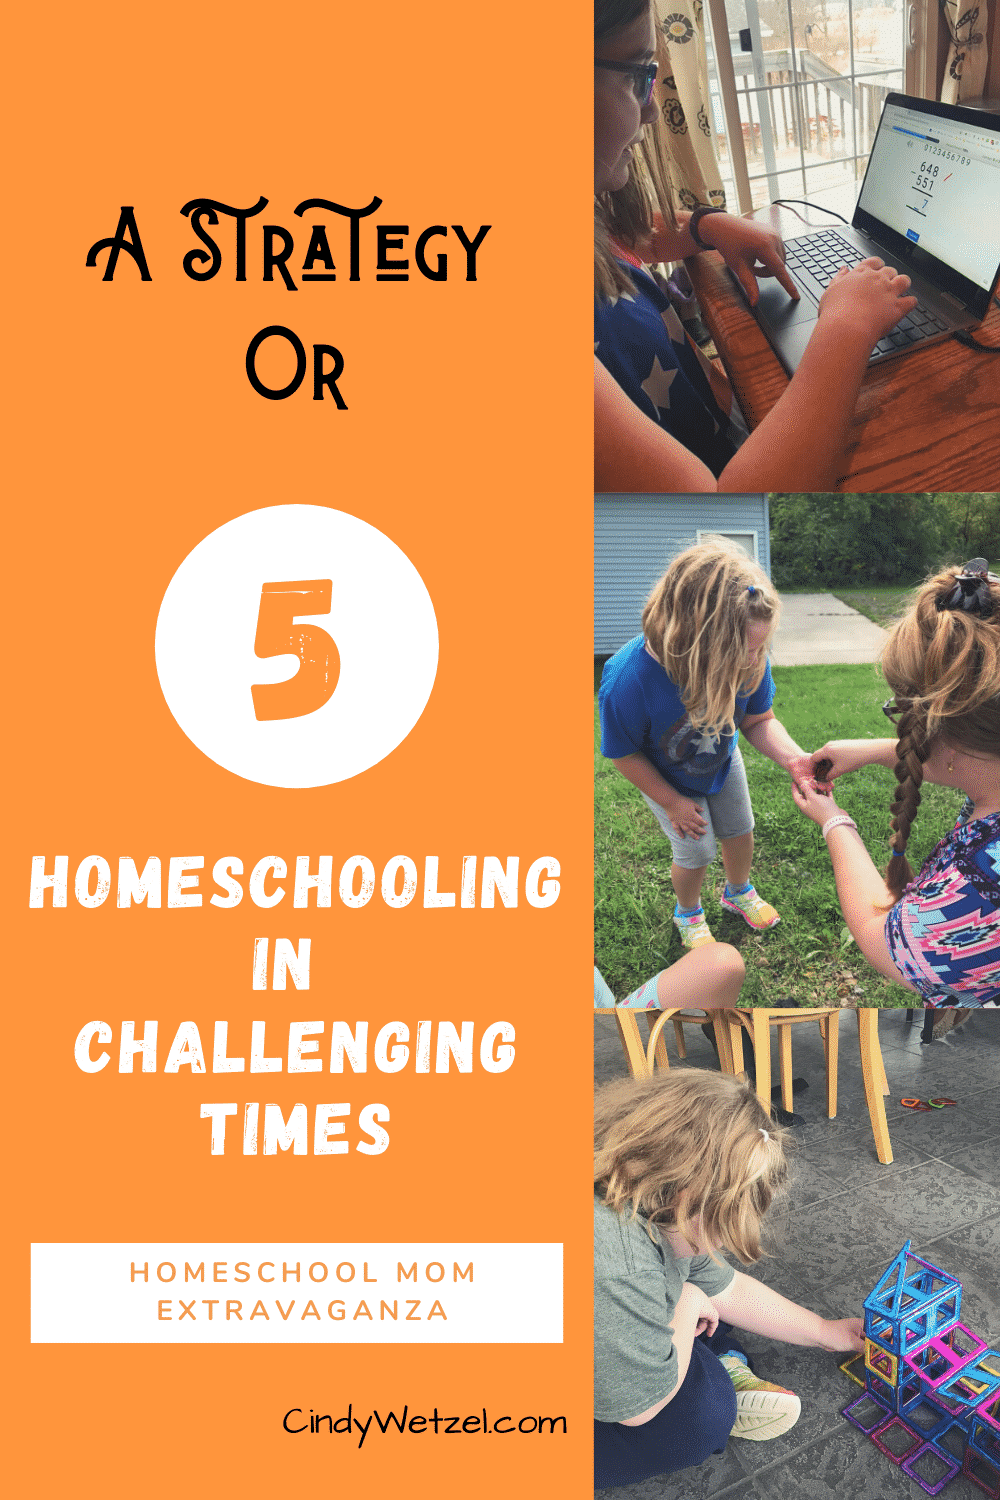 You are currently viewing A Strategy or 5: Homeschooling in Challenging Times